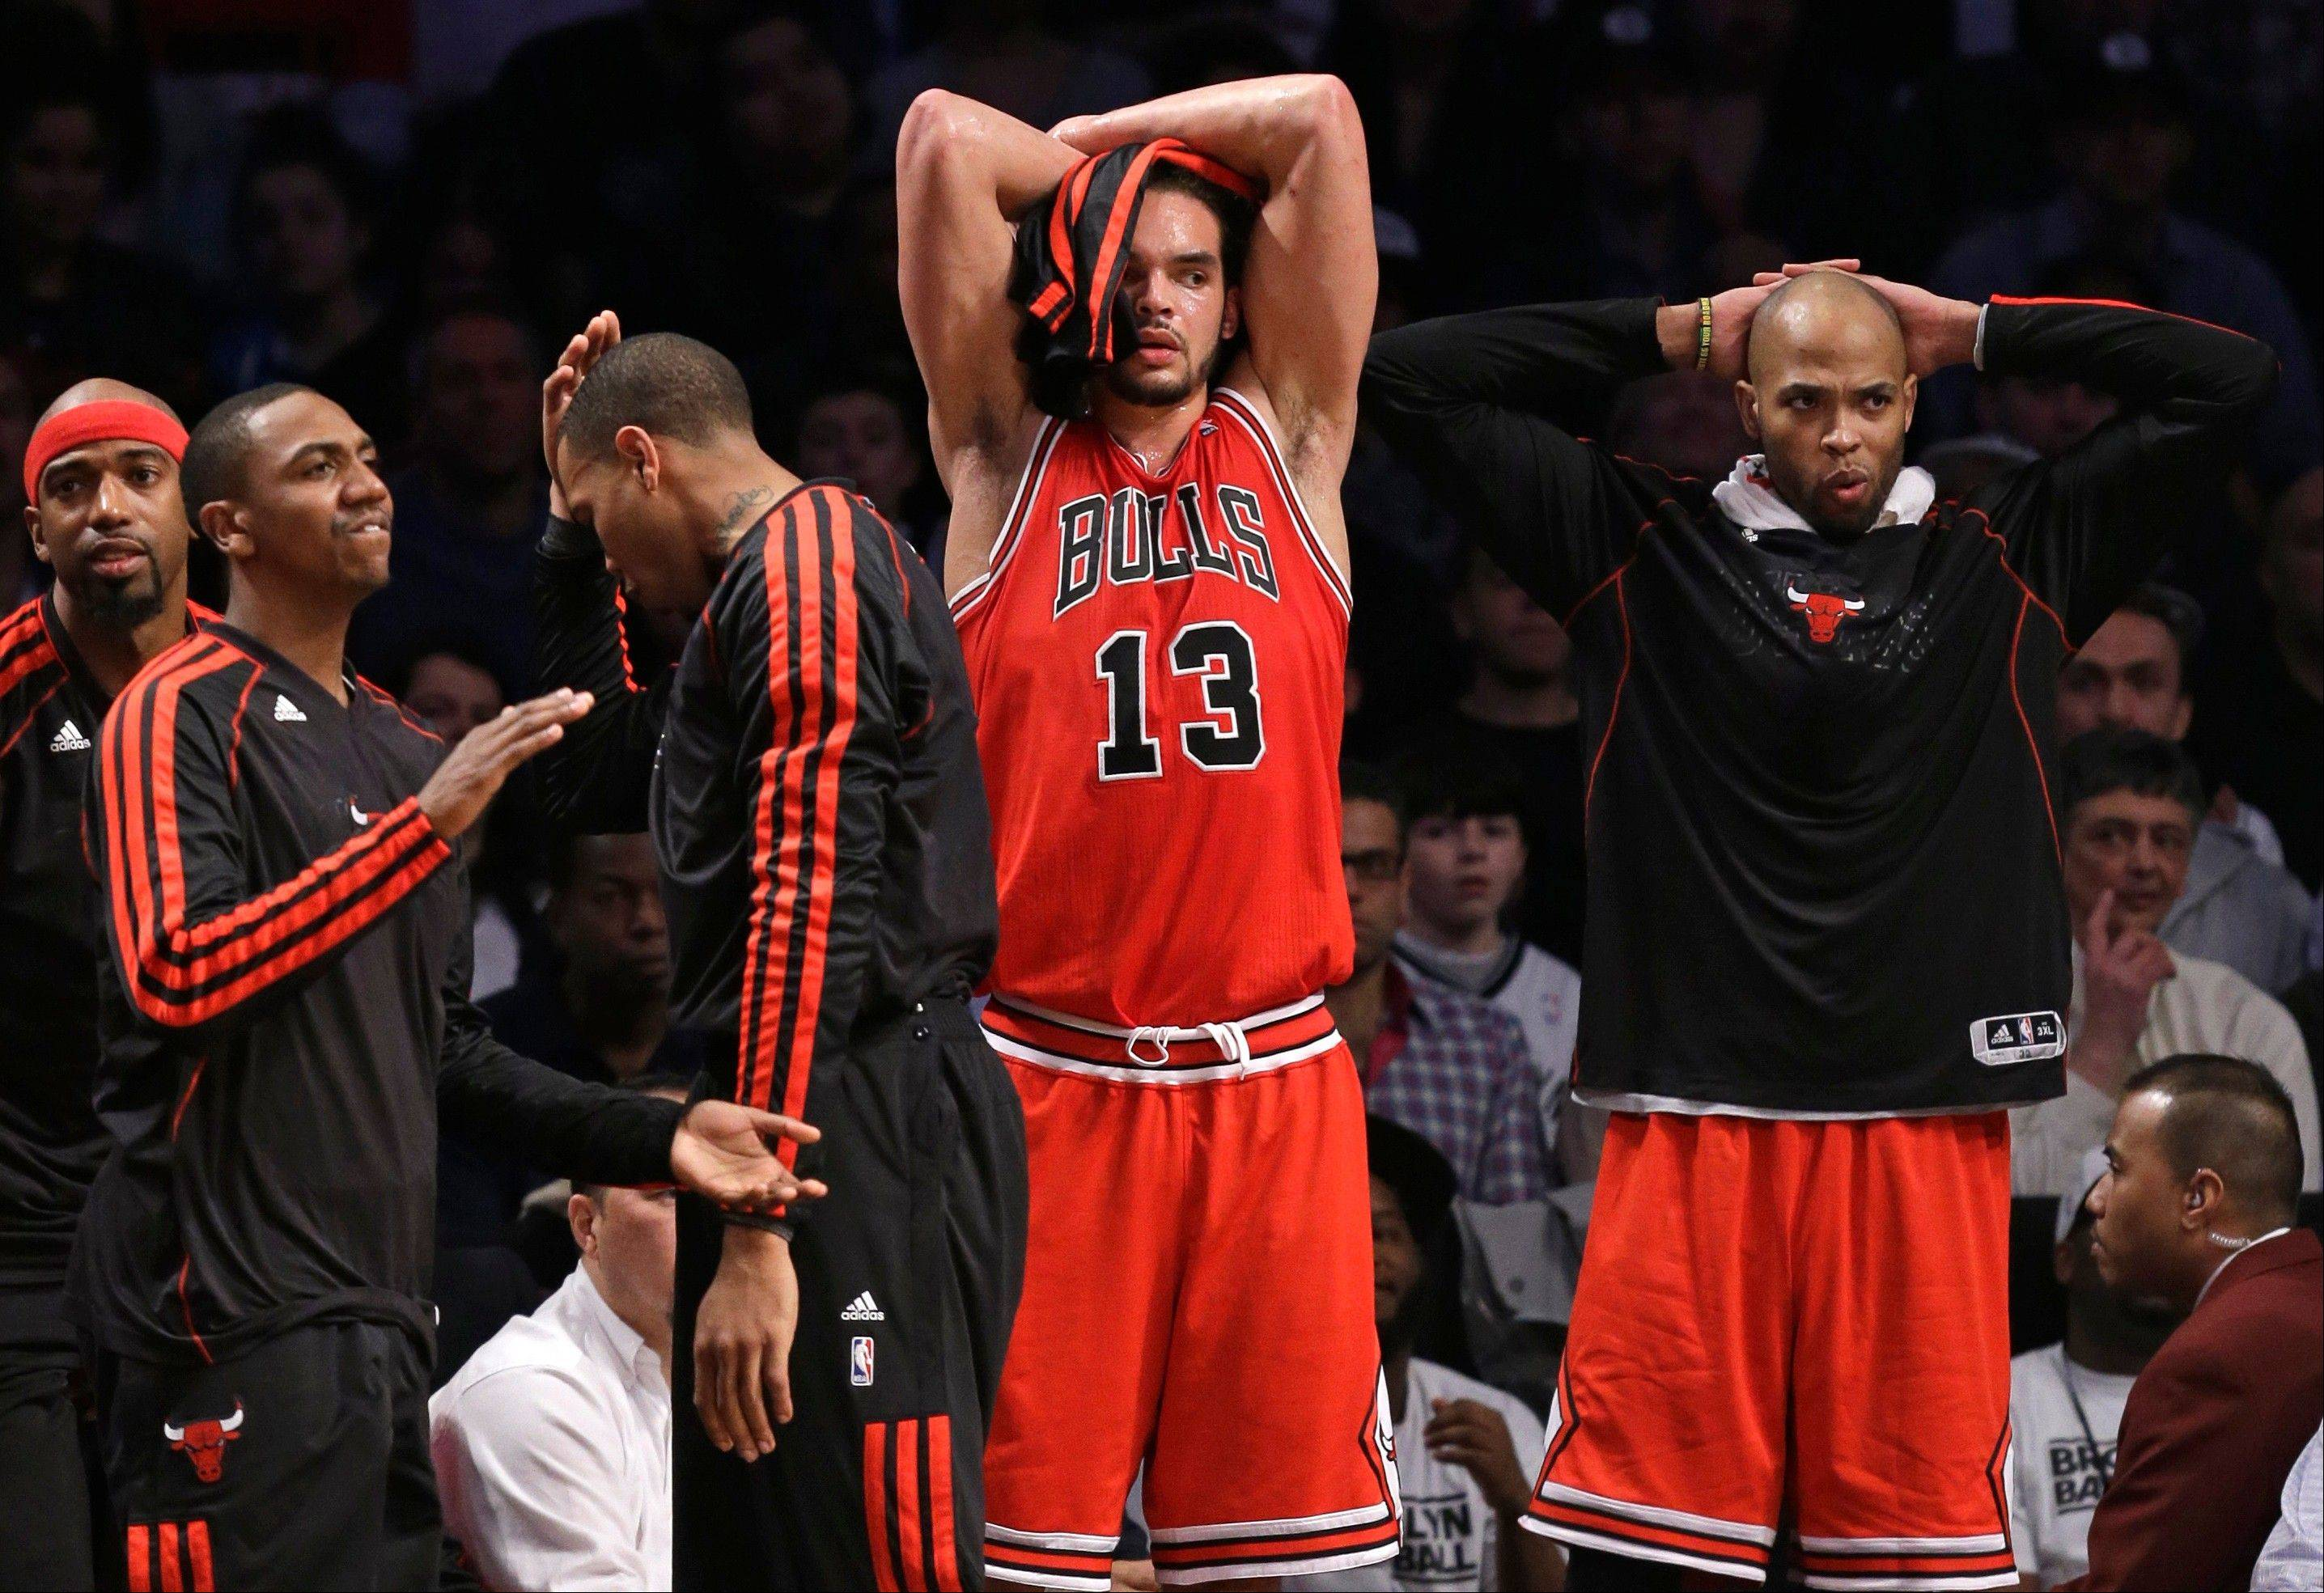 From left, Chicago Bulls' Richard Hamilton, Marquis Teague, Malcolm Thomas, Joakim Noah (13) and Taj Gibson react from the bench in the second half of Game 5 of their first-round NBA basketball playoff series against the Brooklyn Nets, Monday, April 29, 2013, in New York. The Nets won 110-91.